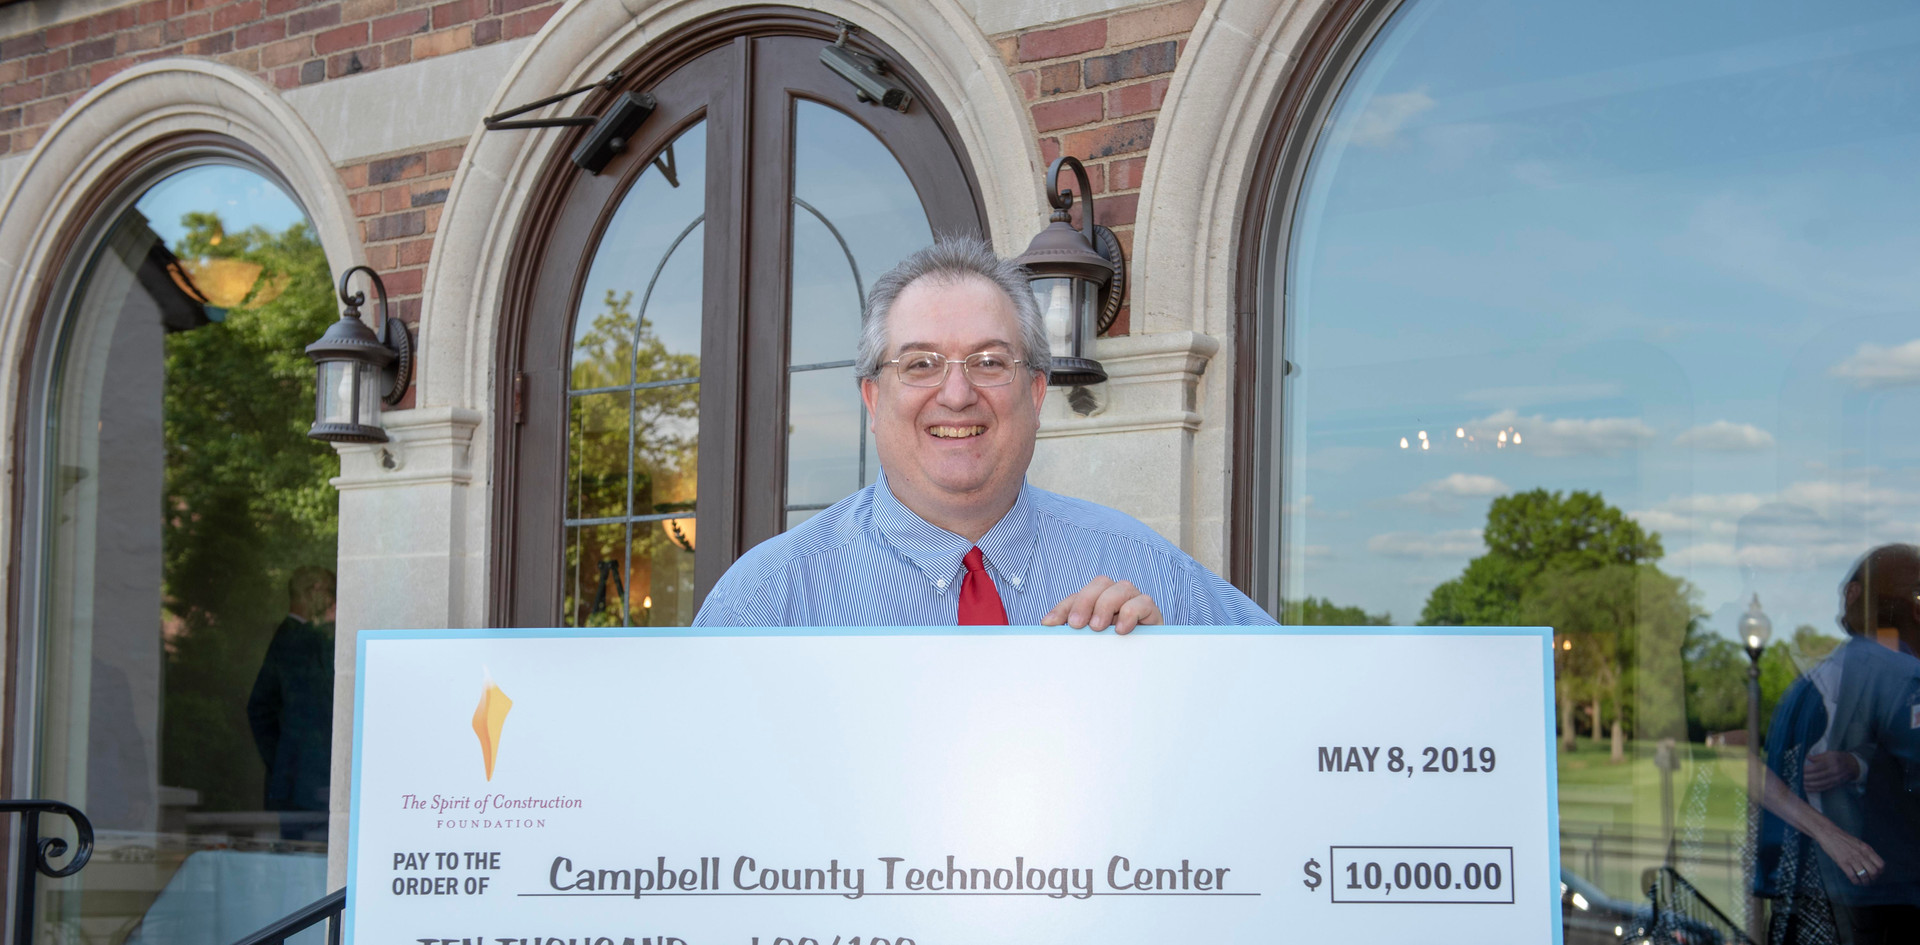 Campbell County Technology Center